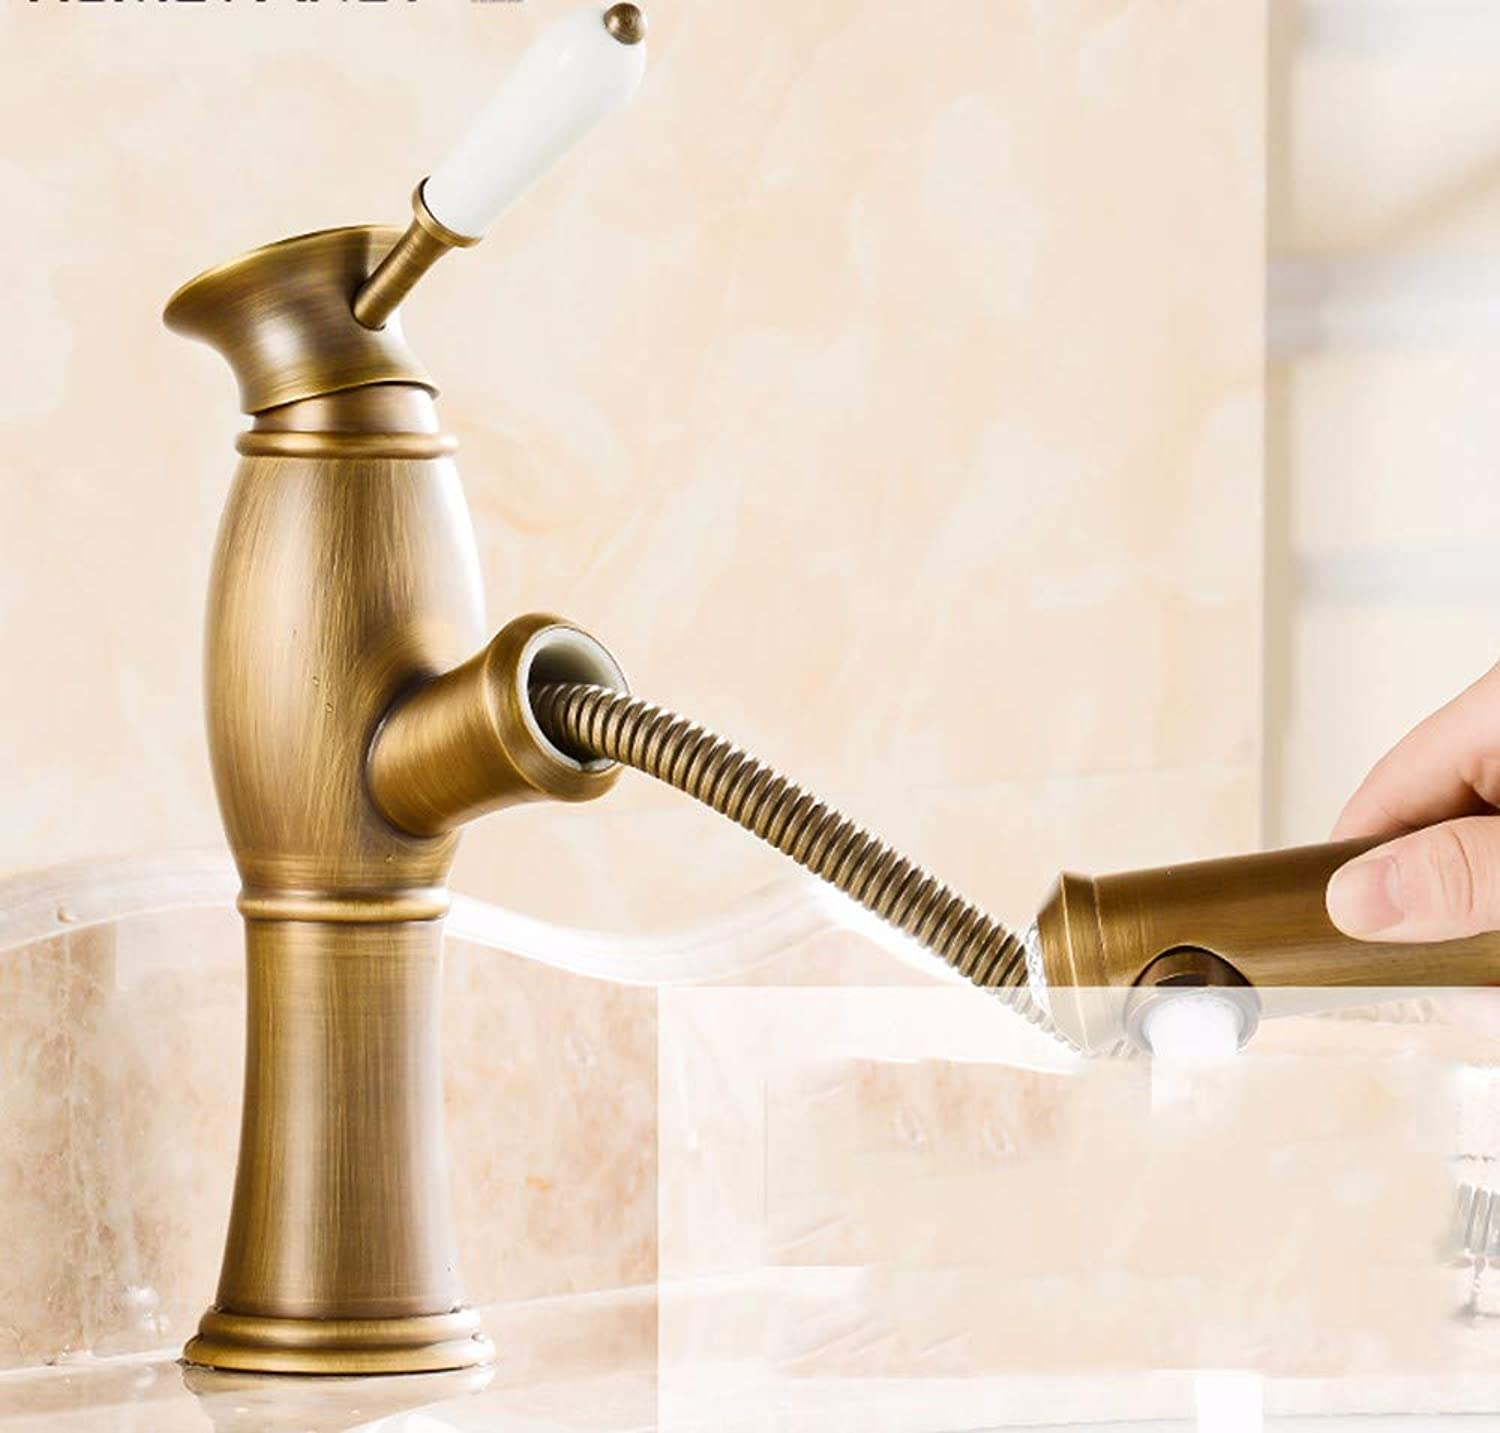 Bijjaladeva Antique Kitchen Sink Mixer Tap The Copper Out of The Vanity Area with hot and Cold Water Tank, redating Kitchen Faucet 3